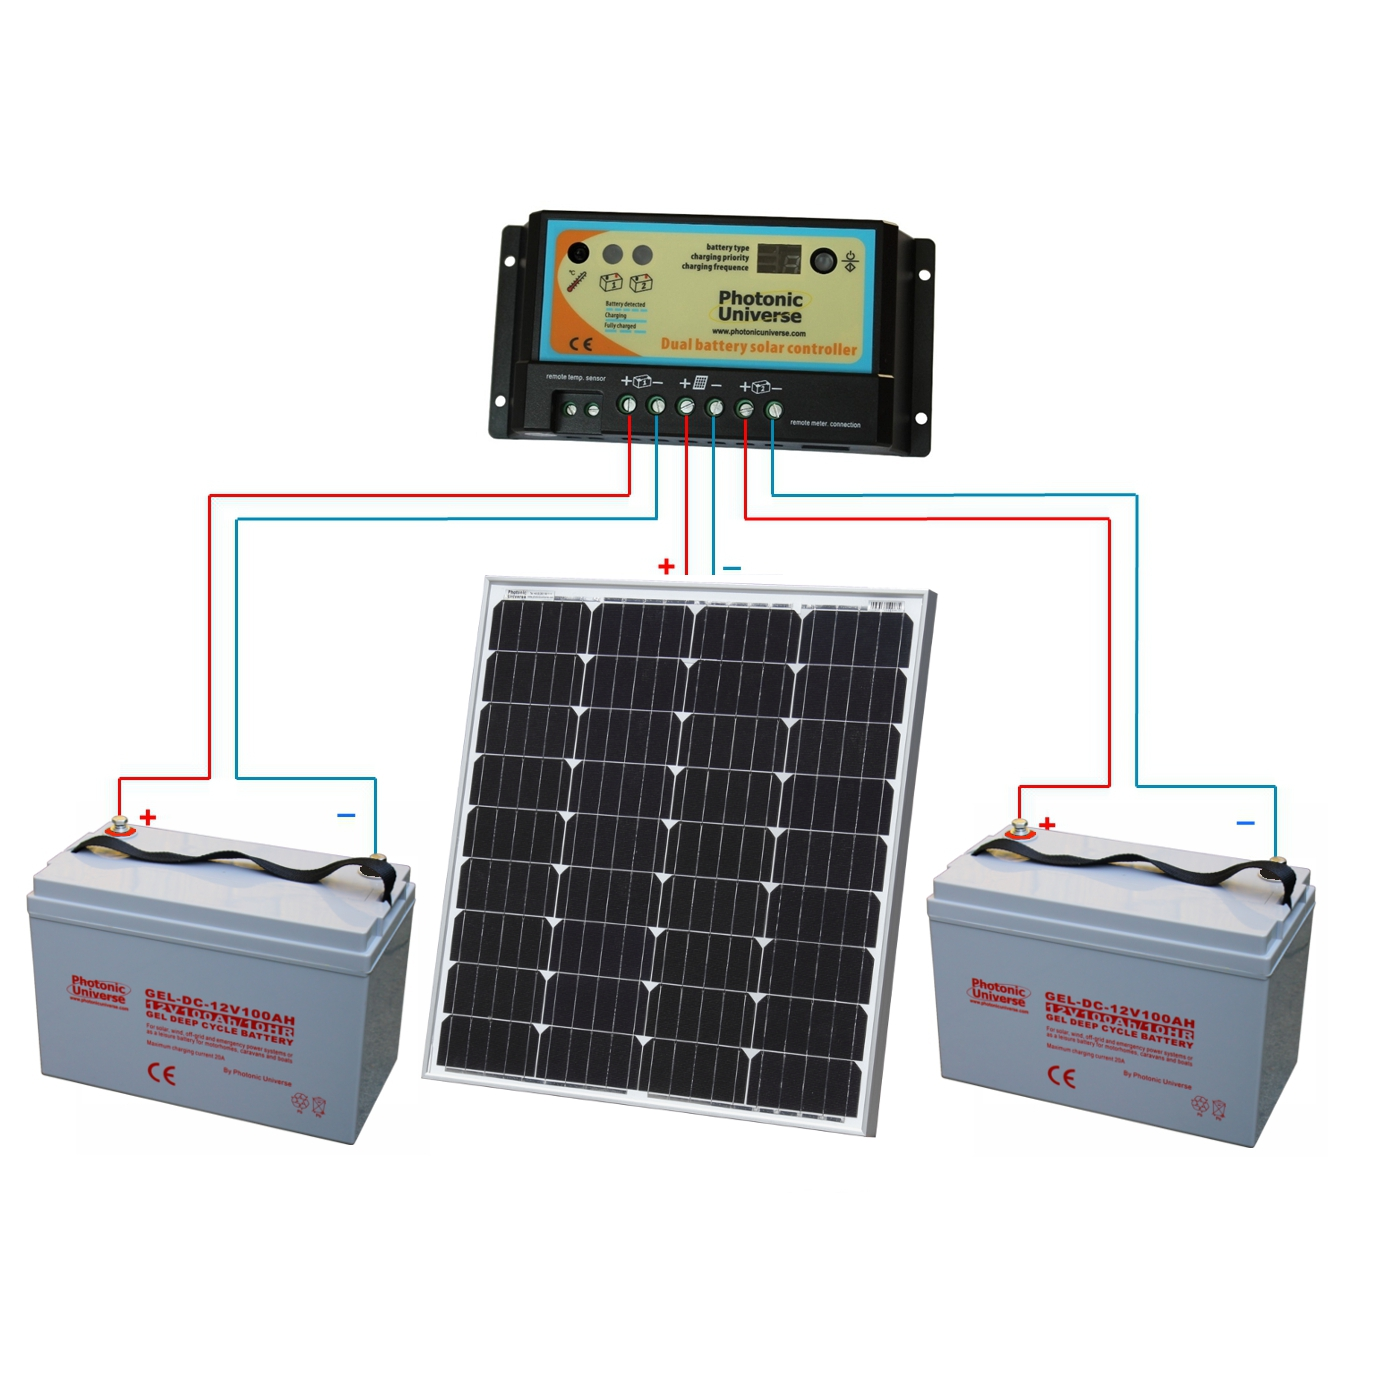 Connection diagram for 80W 12V  Photonic Universe dual battery solar charging kit